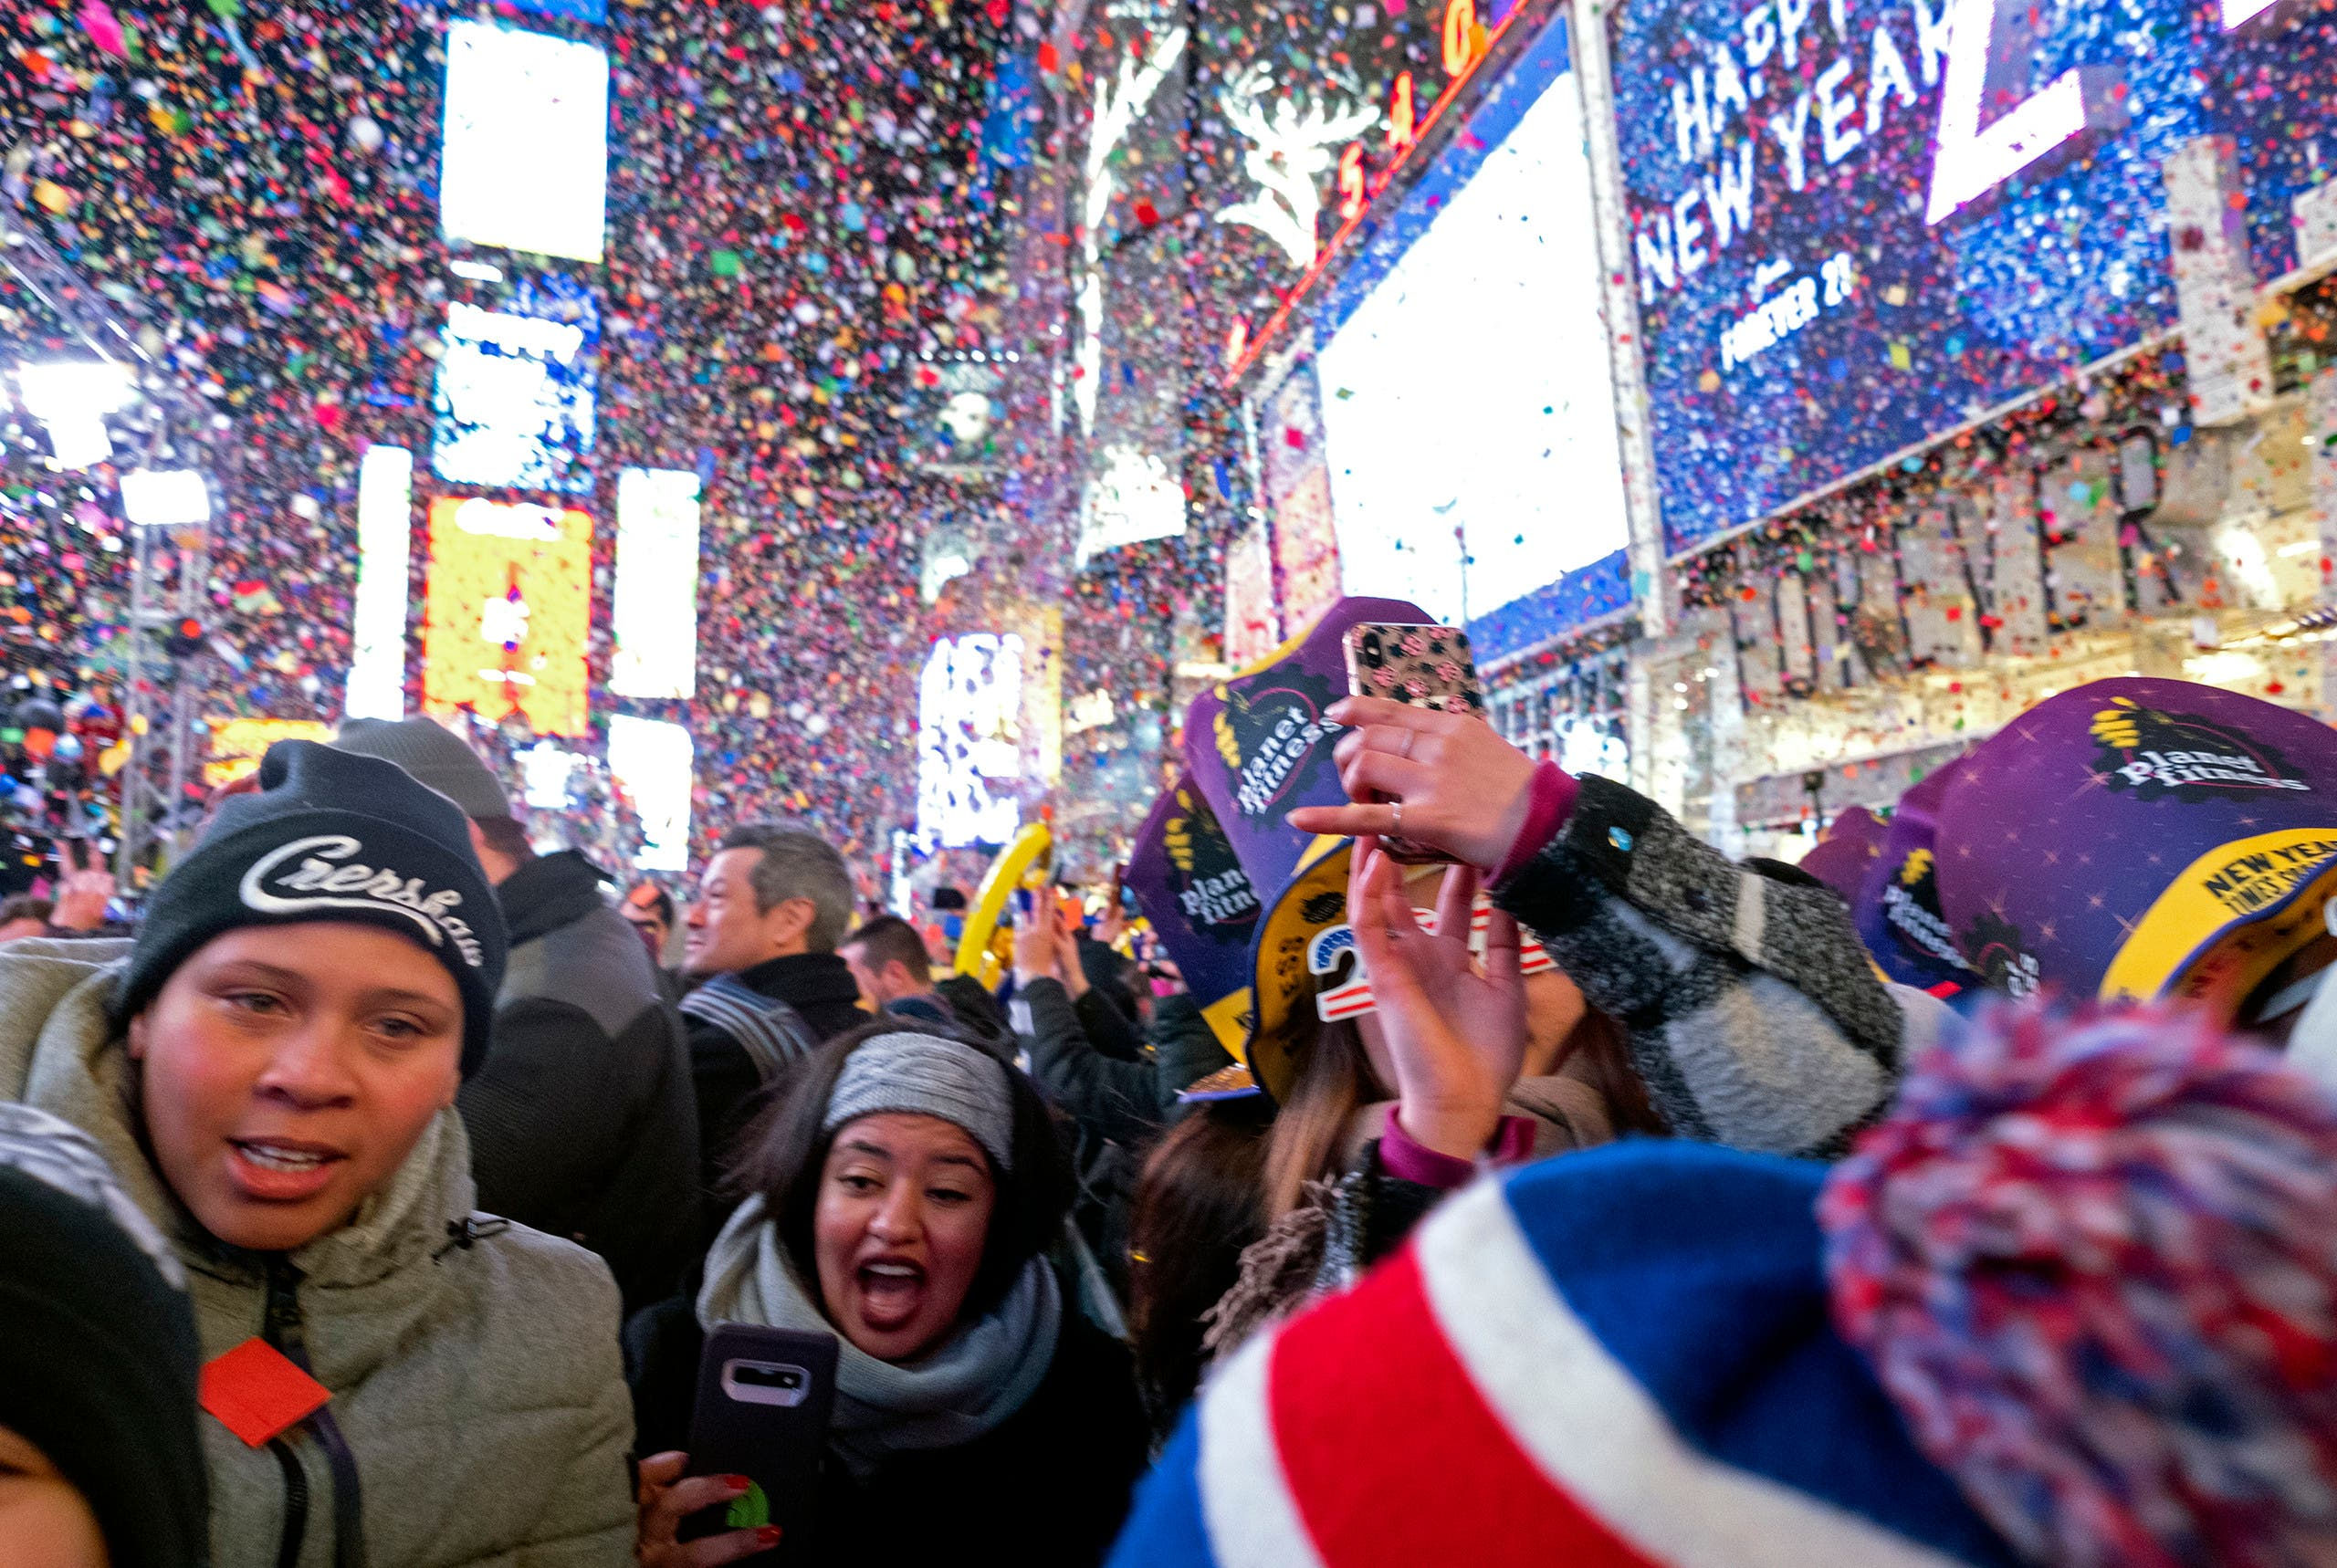 Confetti falls during a New Year's celebration in New York's Times Square, Wednesday, Jan. 1, 2020. (AP Photo/Adam Hunger)